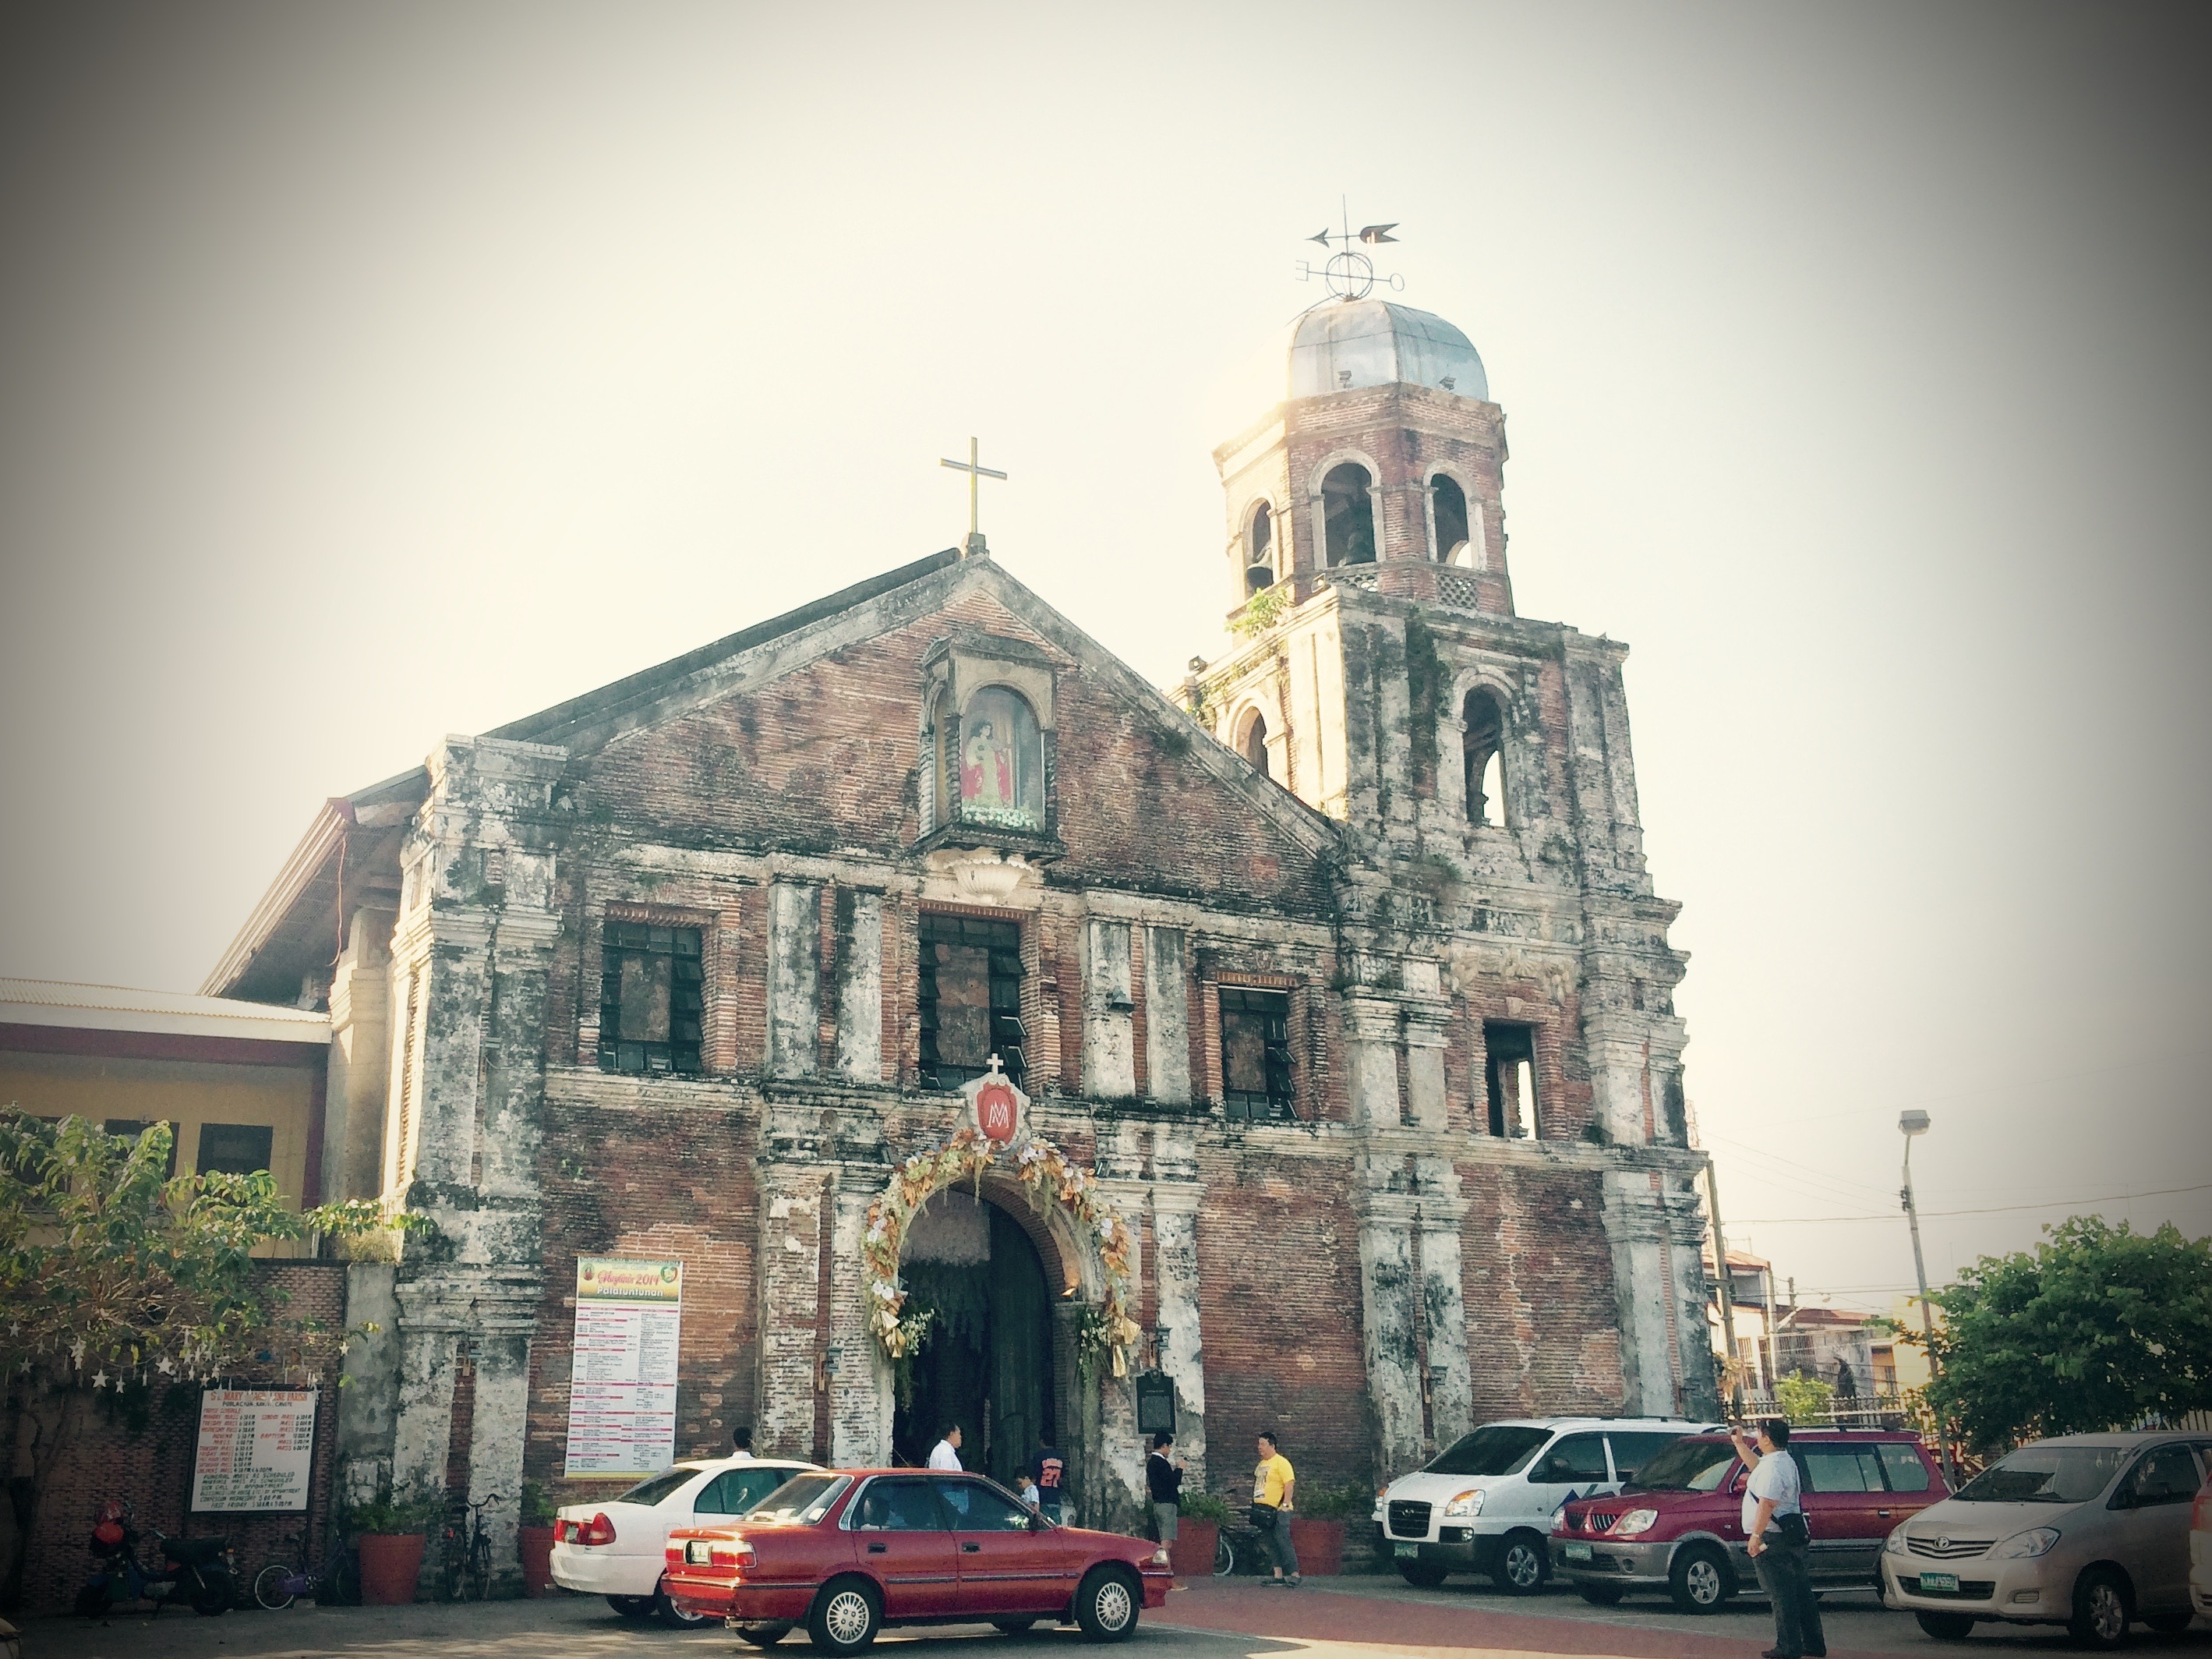 The Church of Mary Magdalene, Kawit, Cavite. Photo: Fr. Jboy Gonzales SJ